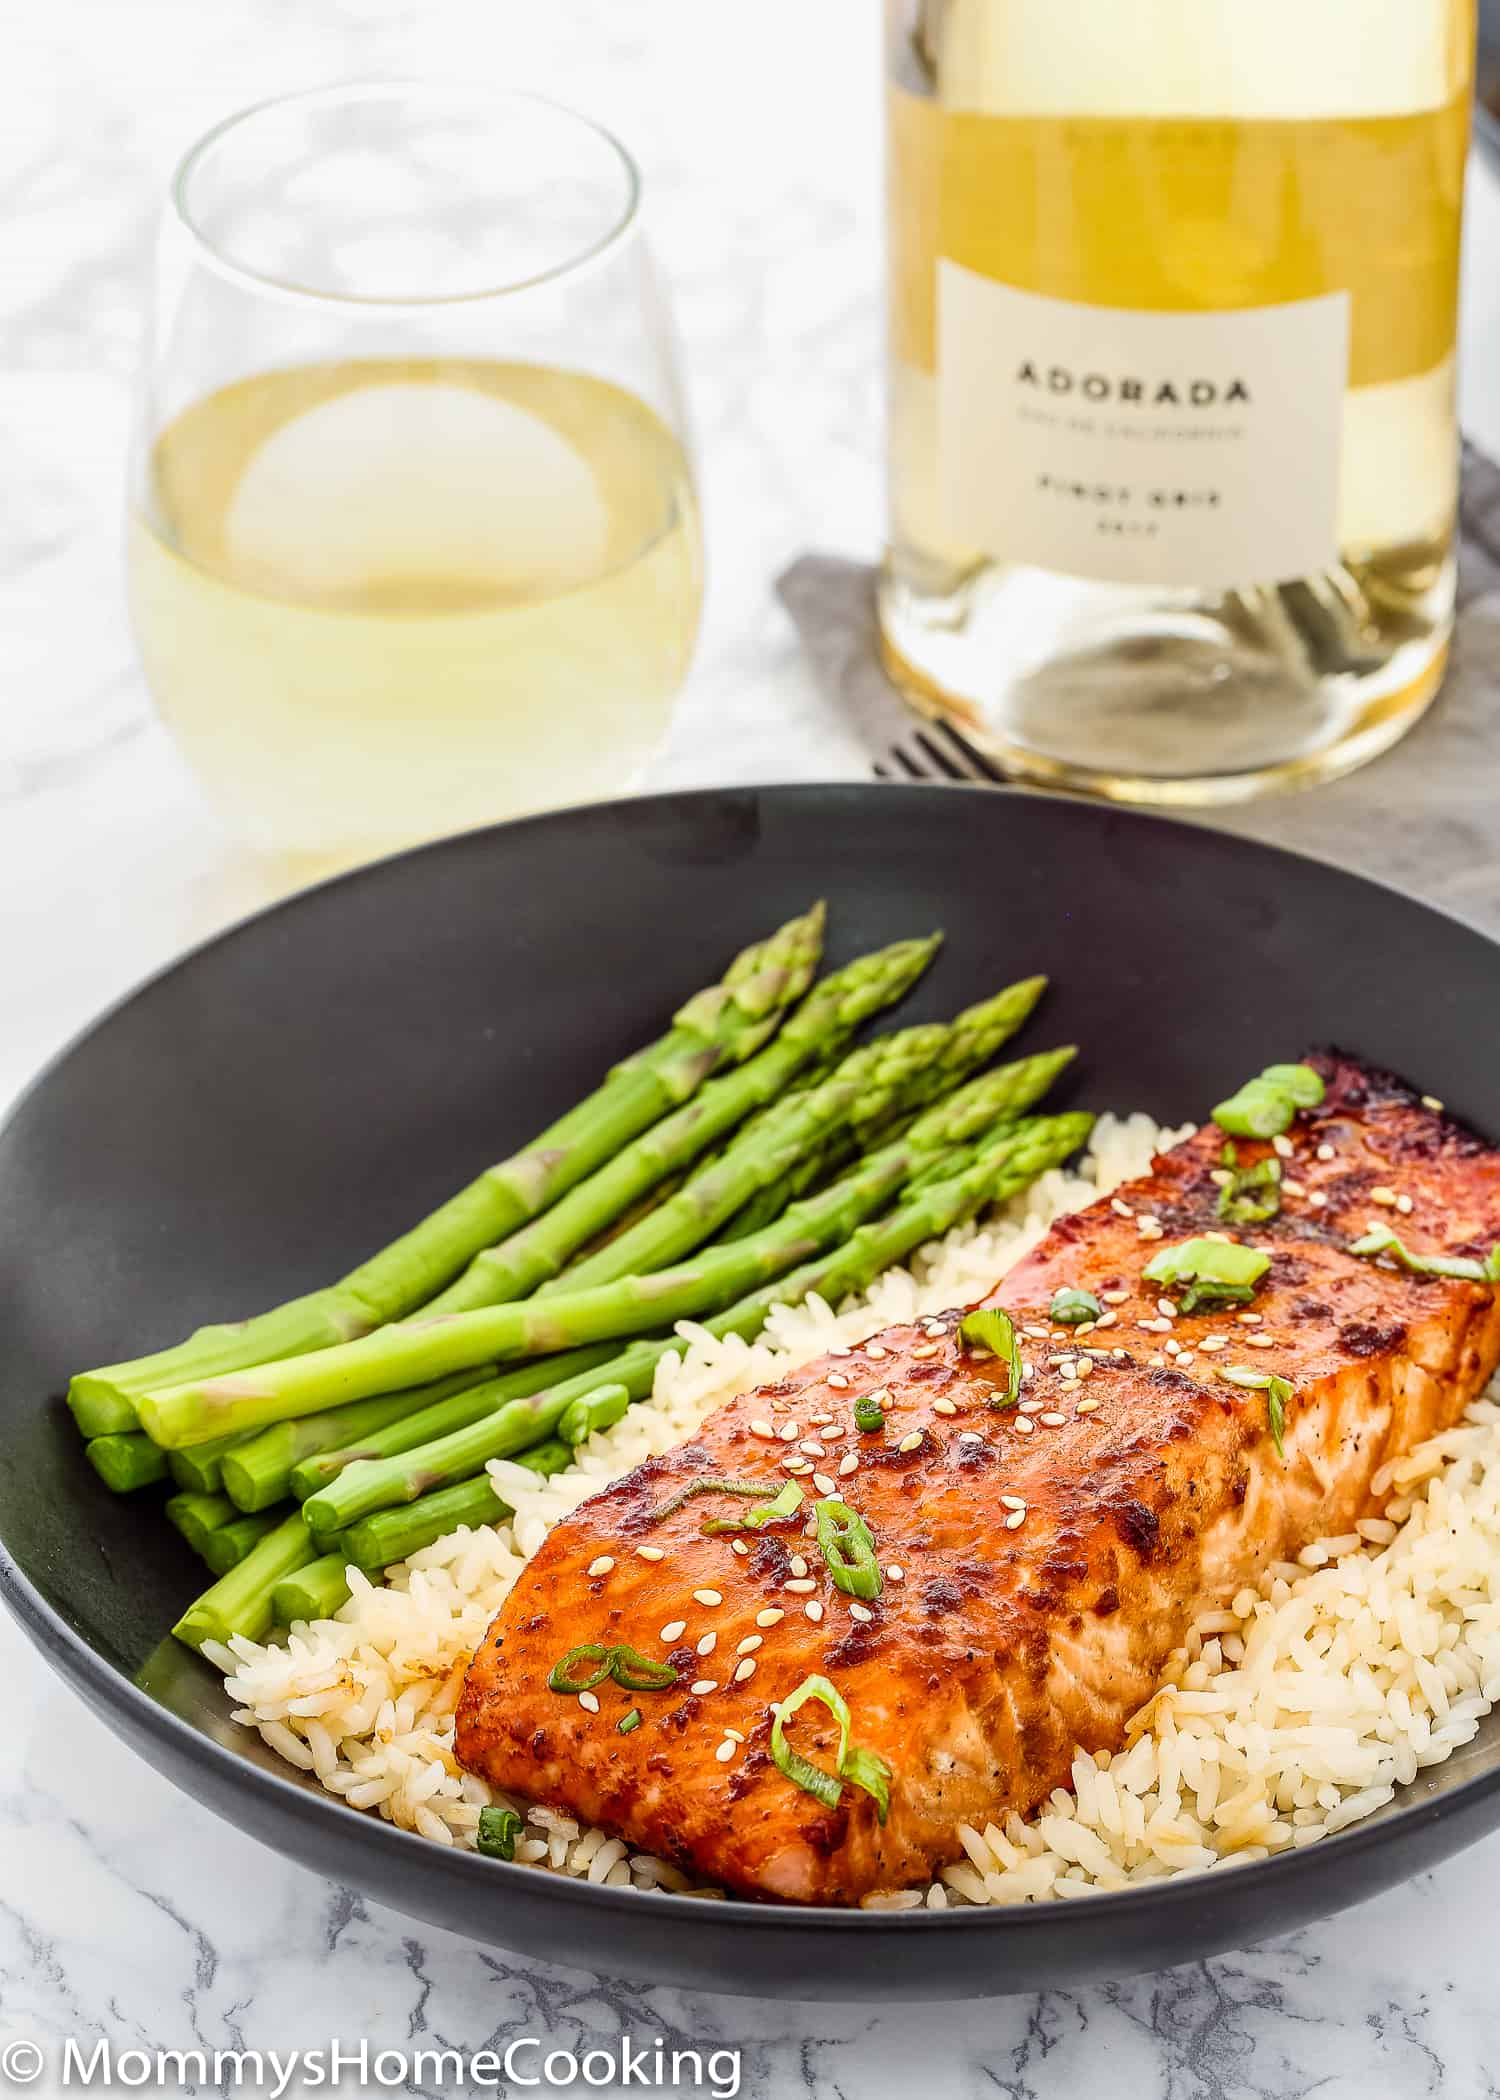 This Easy Teriyaki Salmon is tender, flaky, and packed with amazing flavor. Ready in less than 30 minutes and requires only a few ingredients. Perfect weeknight meal but fancy enough for special occasions too. https://mommyshomecooking.com